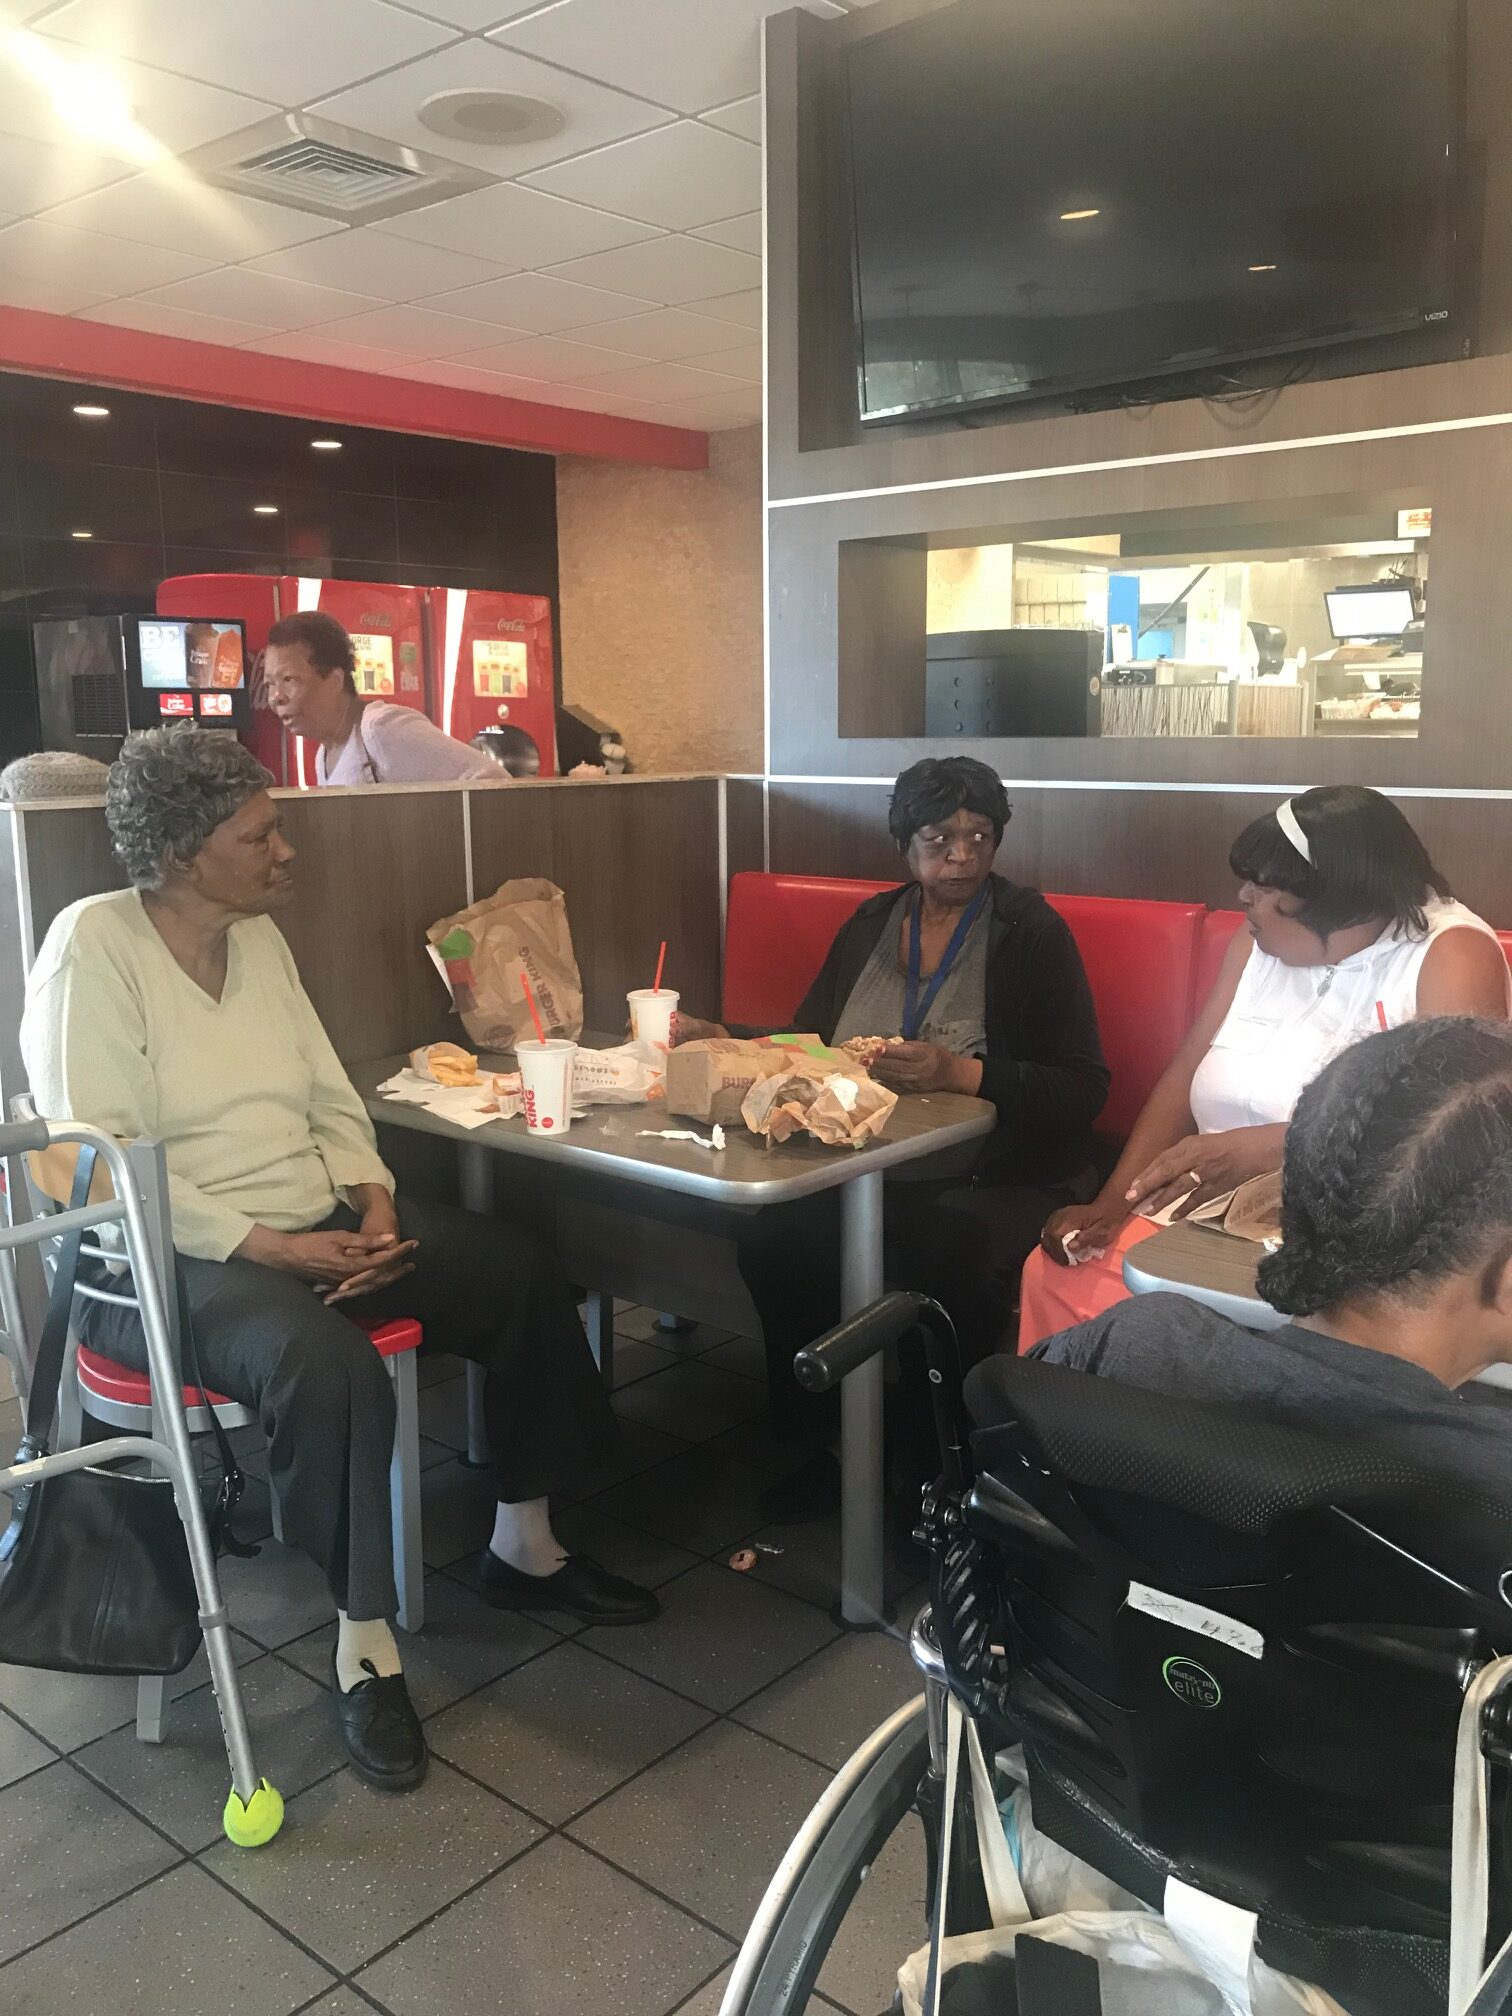 Participants enjoying lunch at Burger King